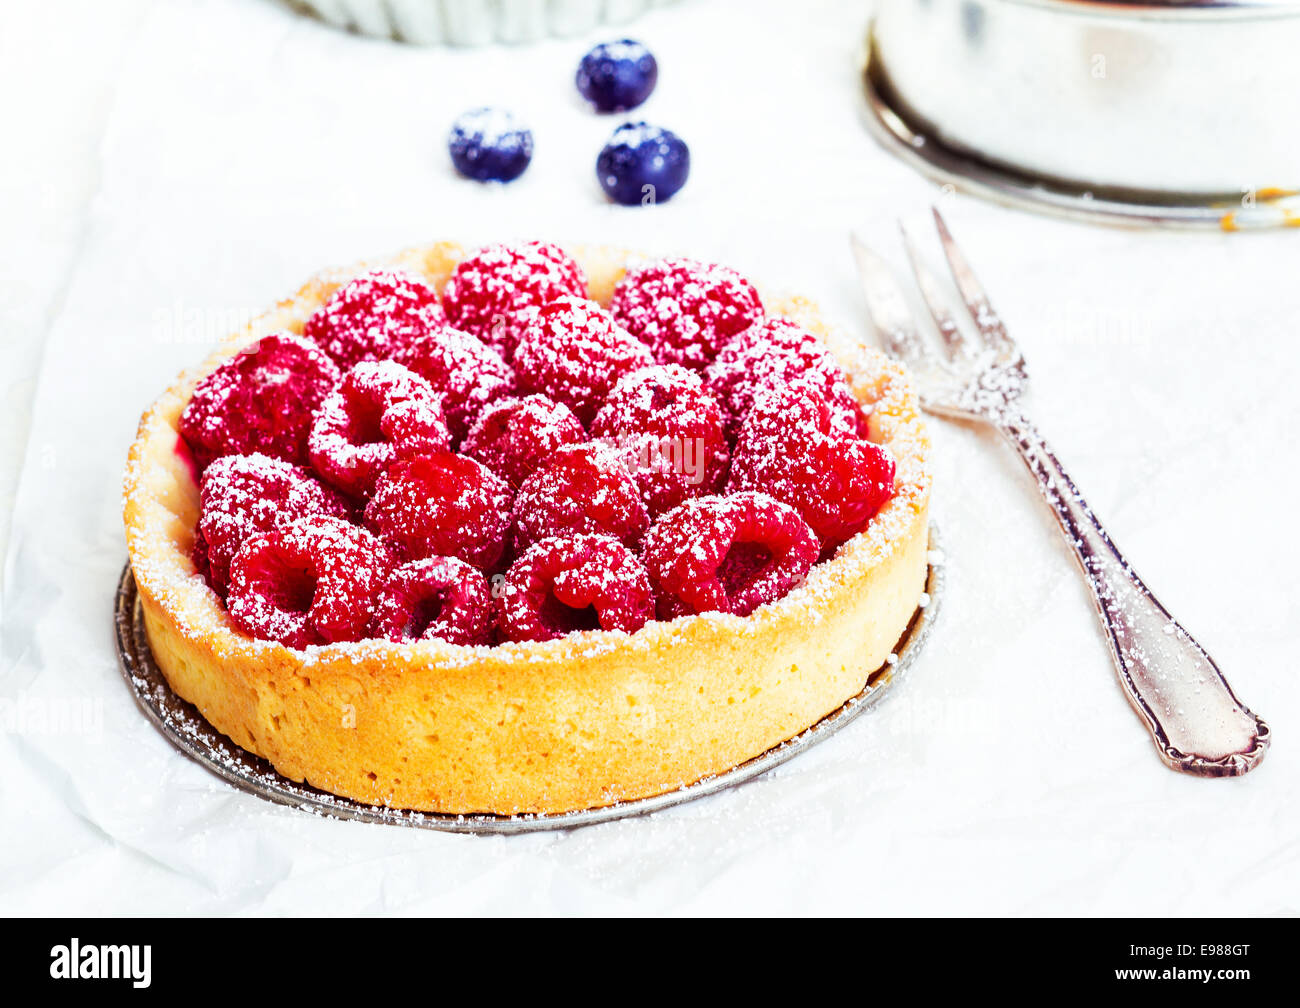 Summery Raspberry Pie and a cake pan on white background - Stock Image